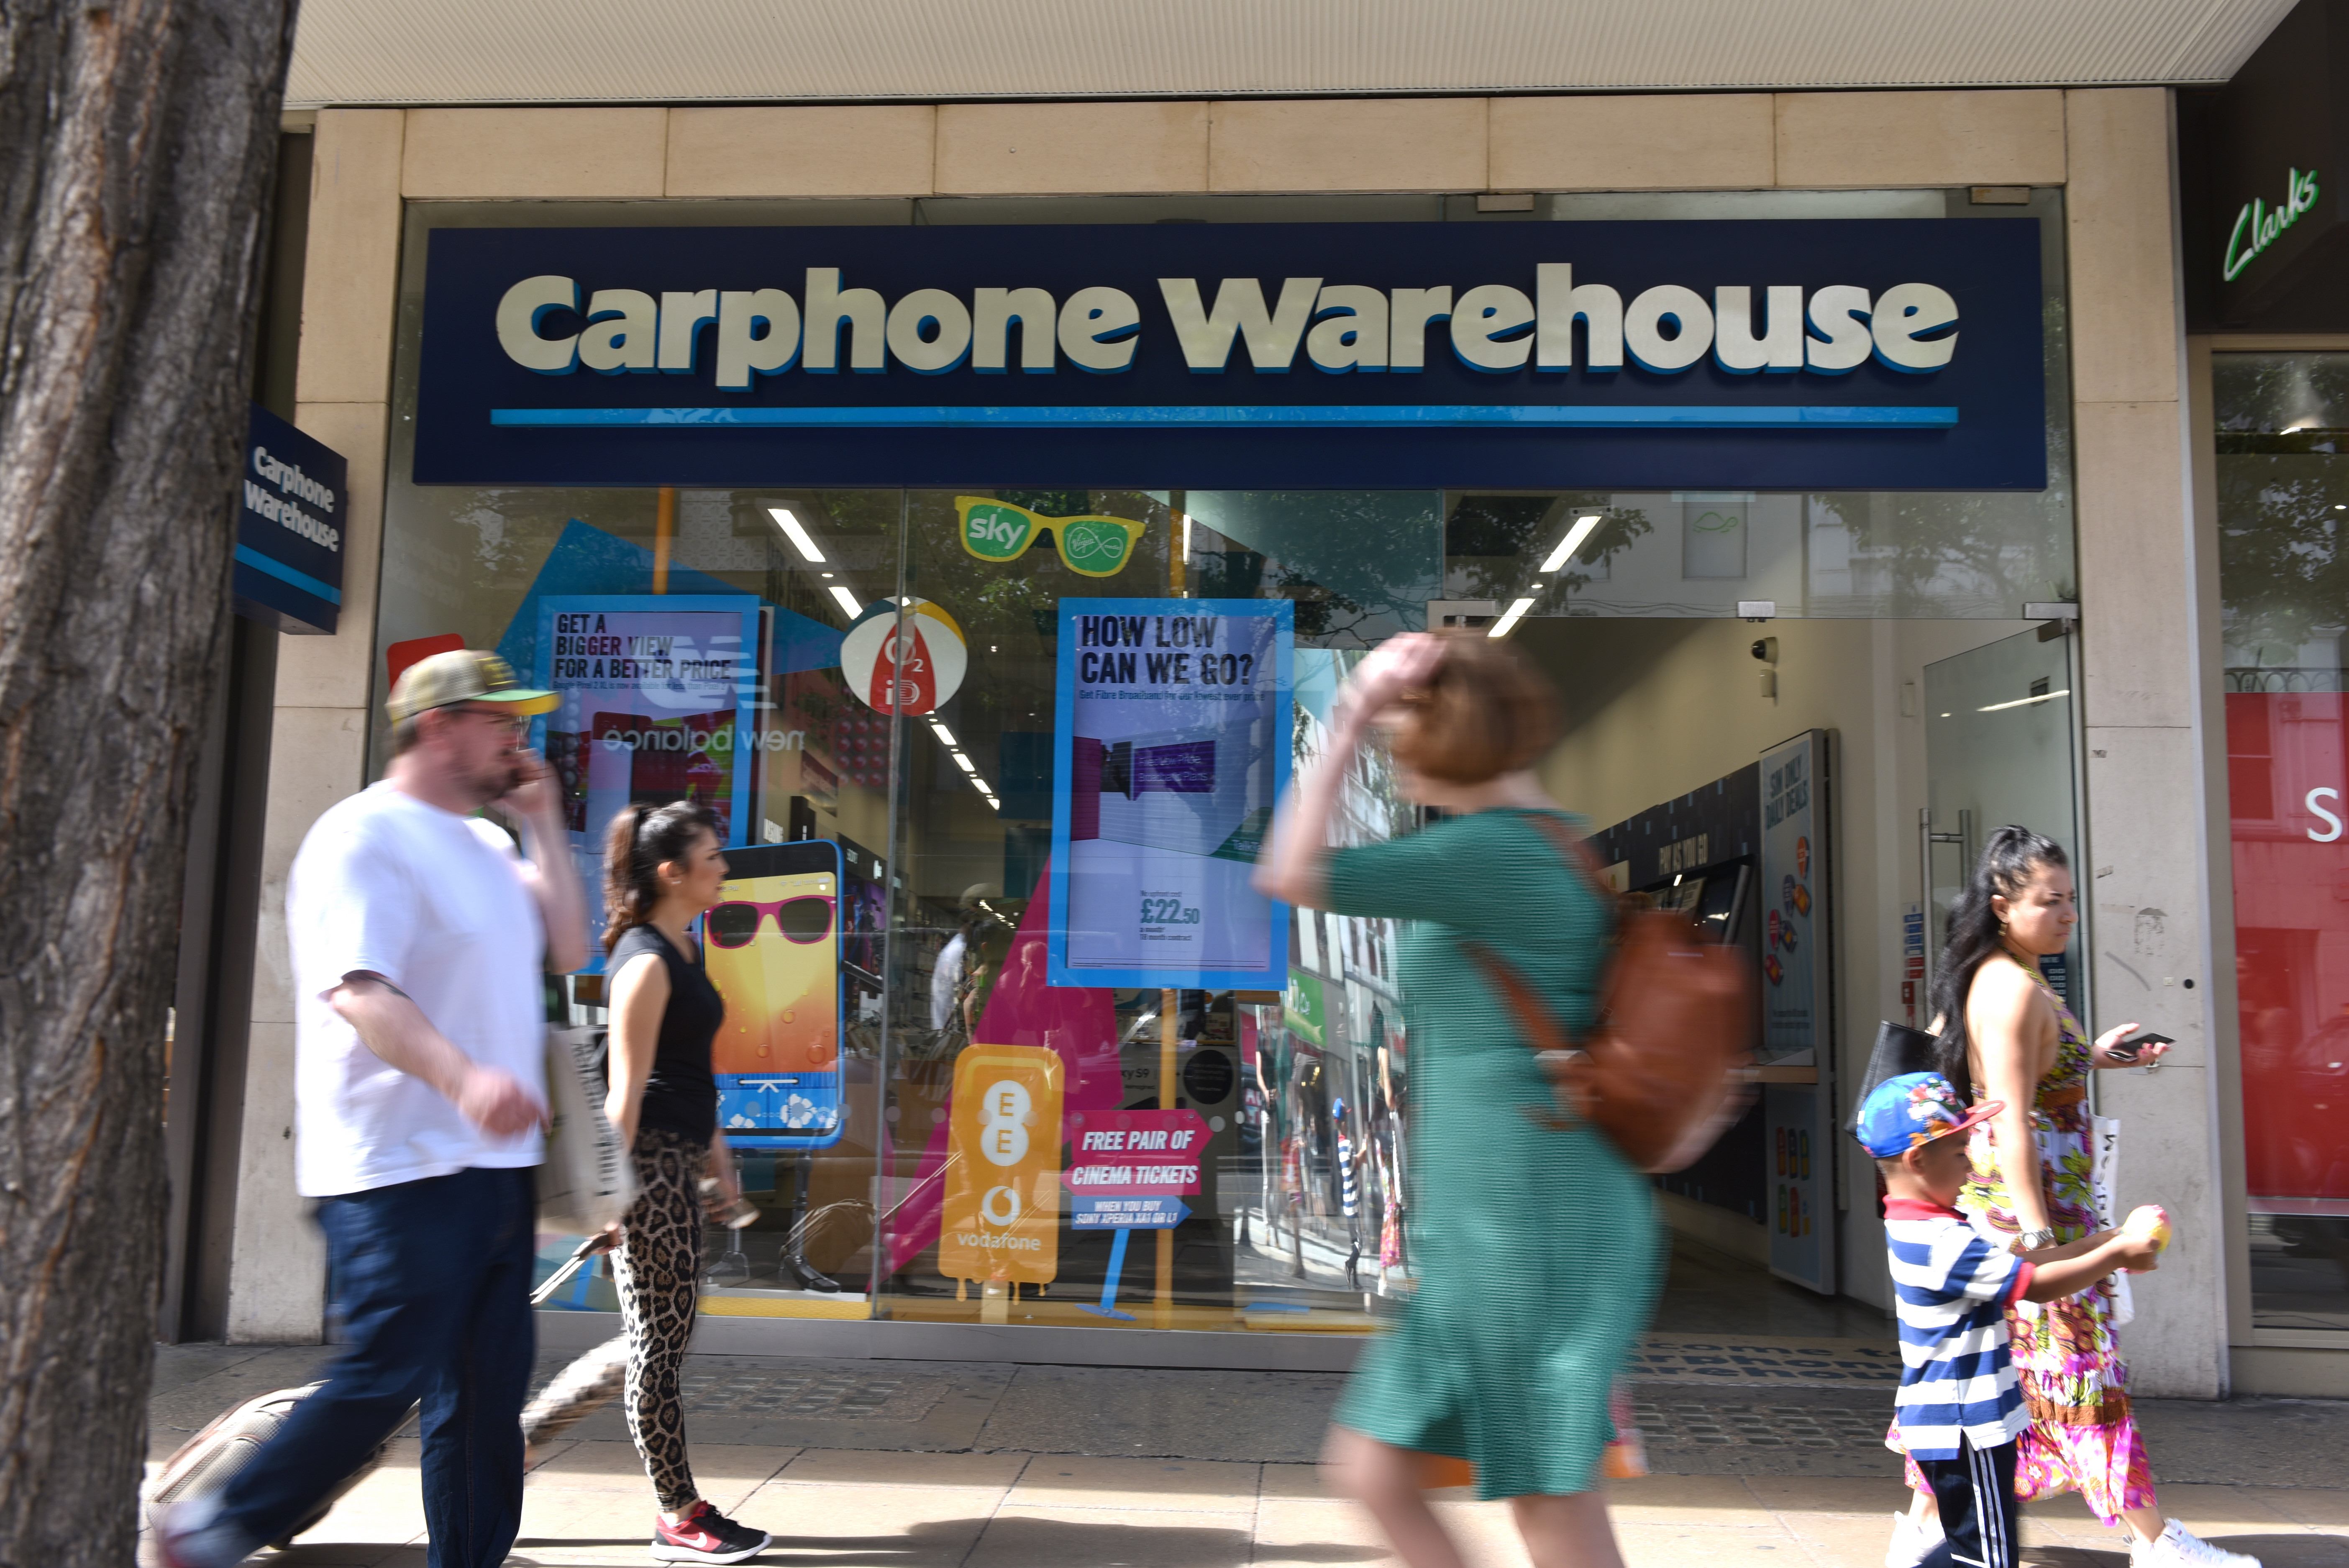 Carphone Warehouse issued a full refund and apology